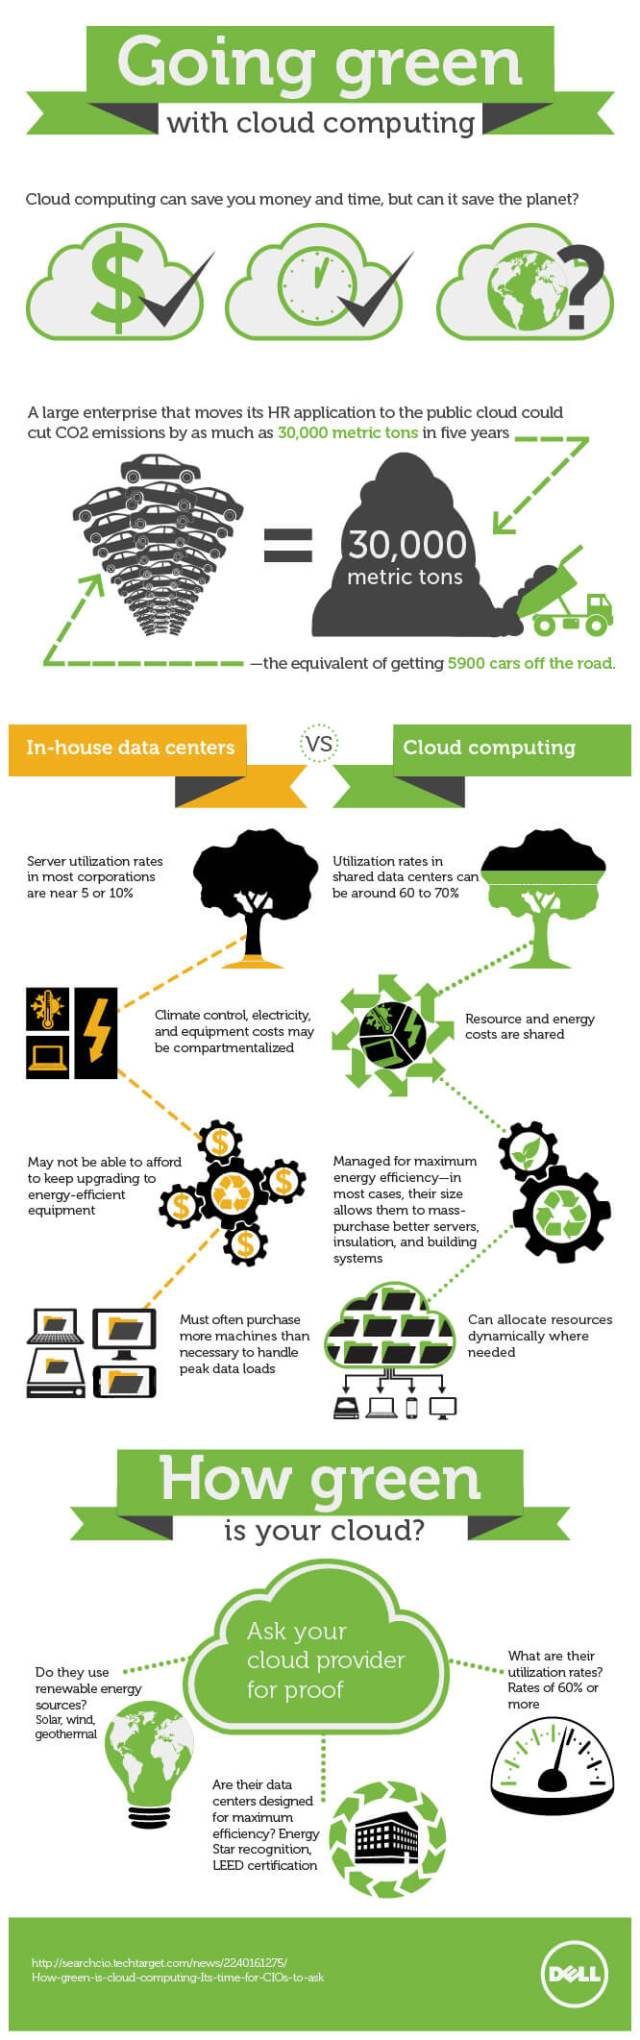 Green cloud computing infographic